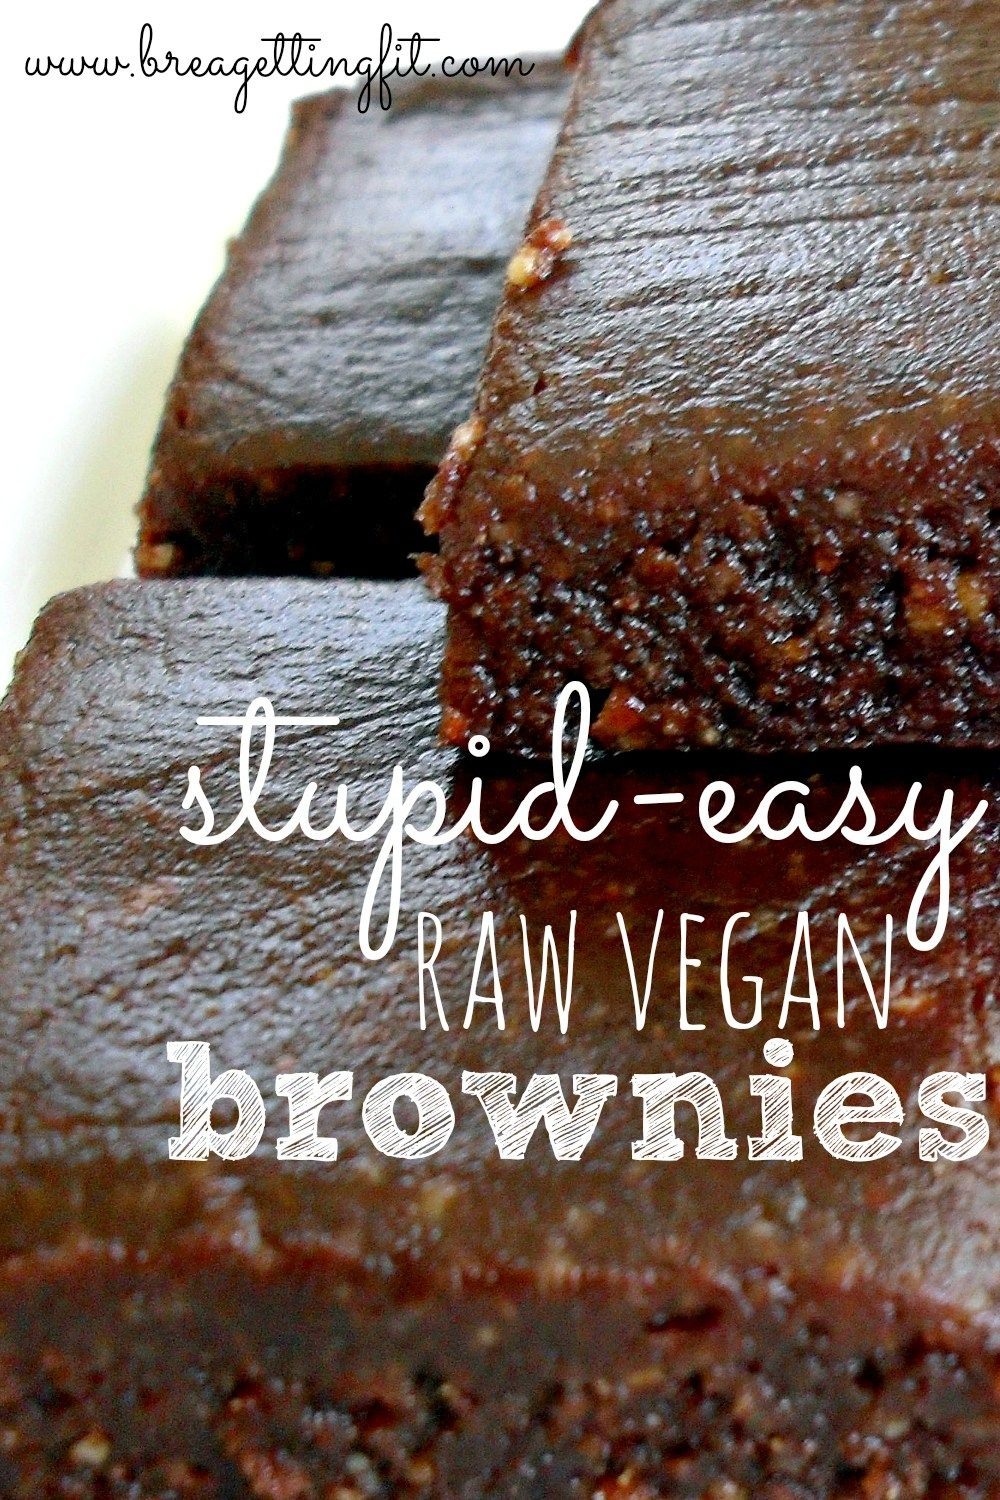 1 cup raw almonds, soaked for 1 hour 3/4 cup dates, pitted dash salt 1 tsp vanilla extract 1/4 cup raw cocoa powder 1/4 cup raw agave or raw honey (use less if you want truly 'dark chocolate' brownies) Put the almonds and dates into the food processor, an